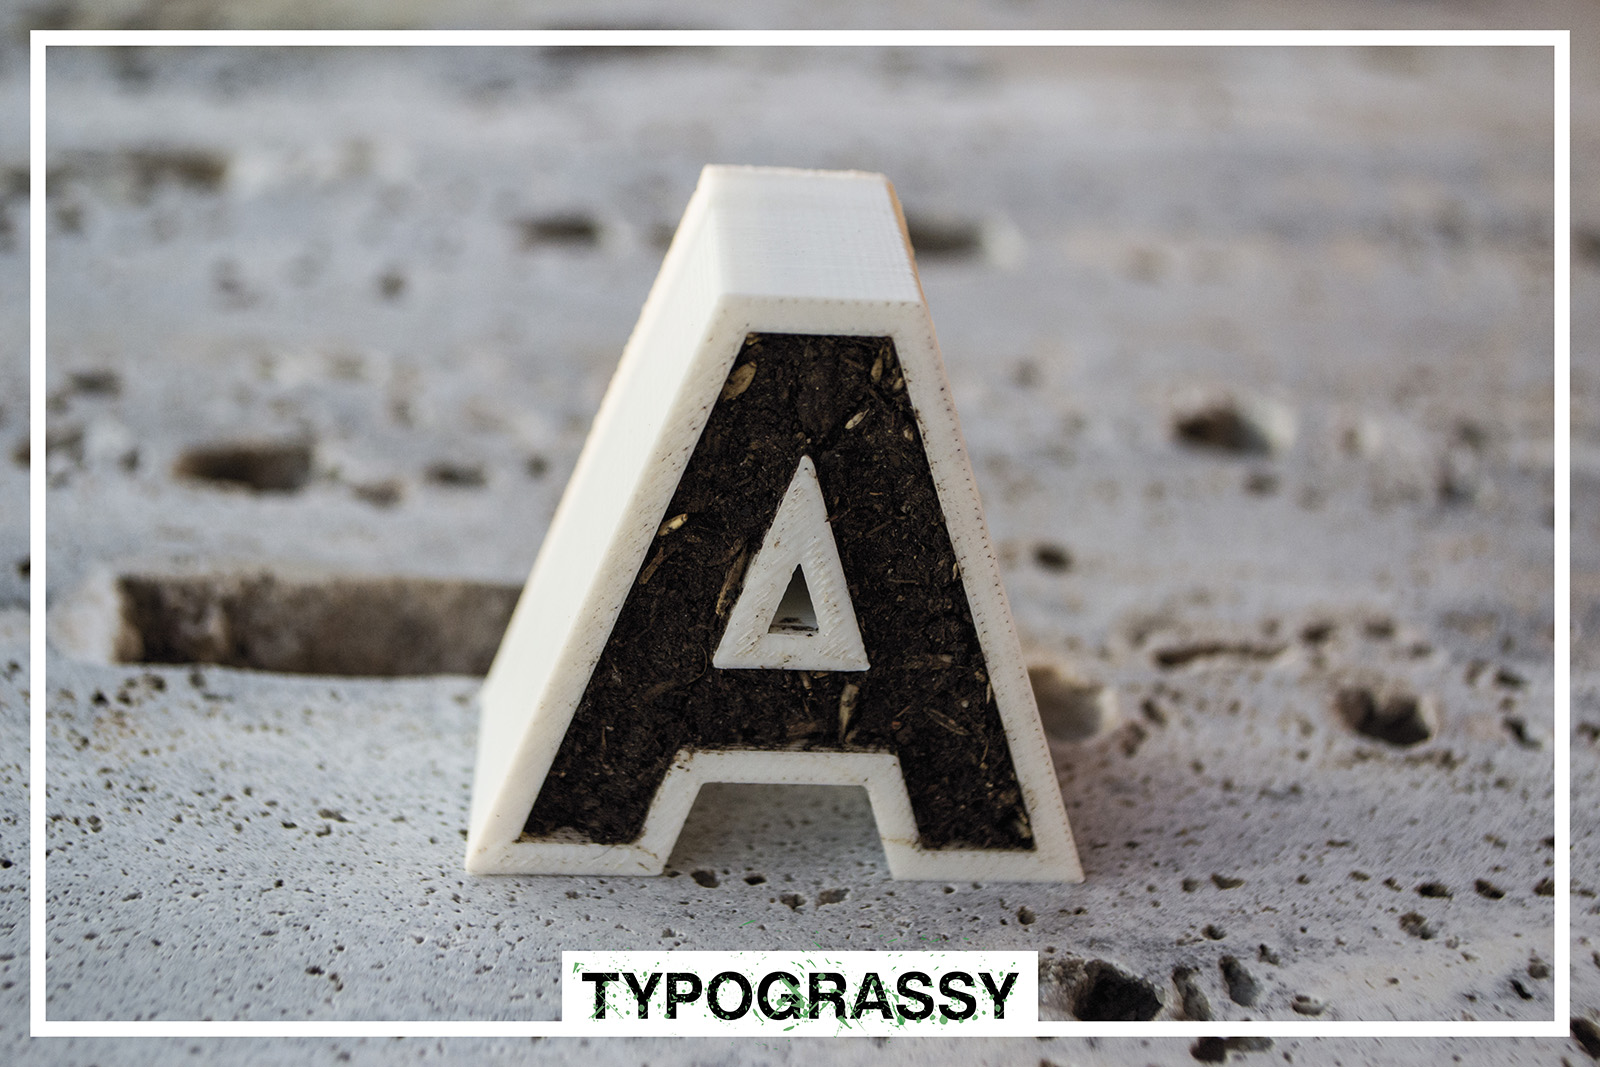 3D Printed letters and symbols with soil_Typograssy_3d product_yianart.com